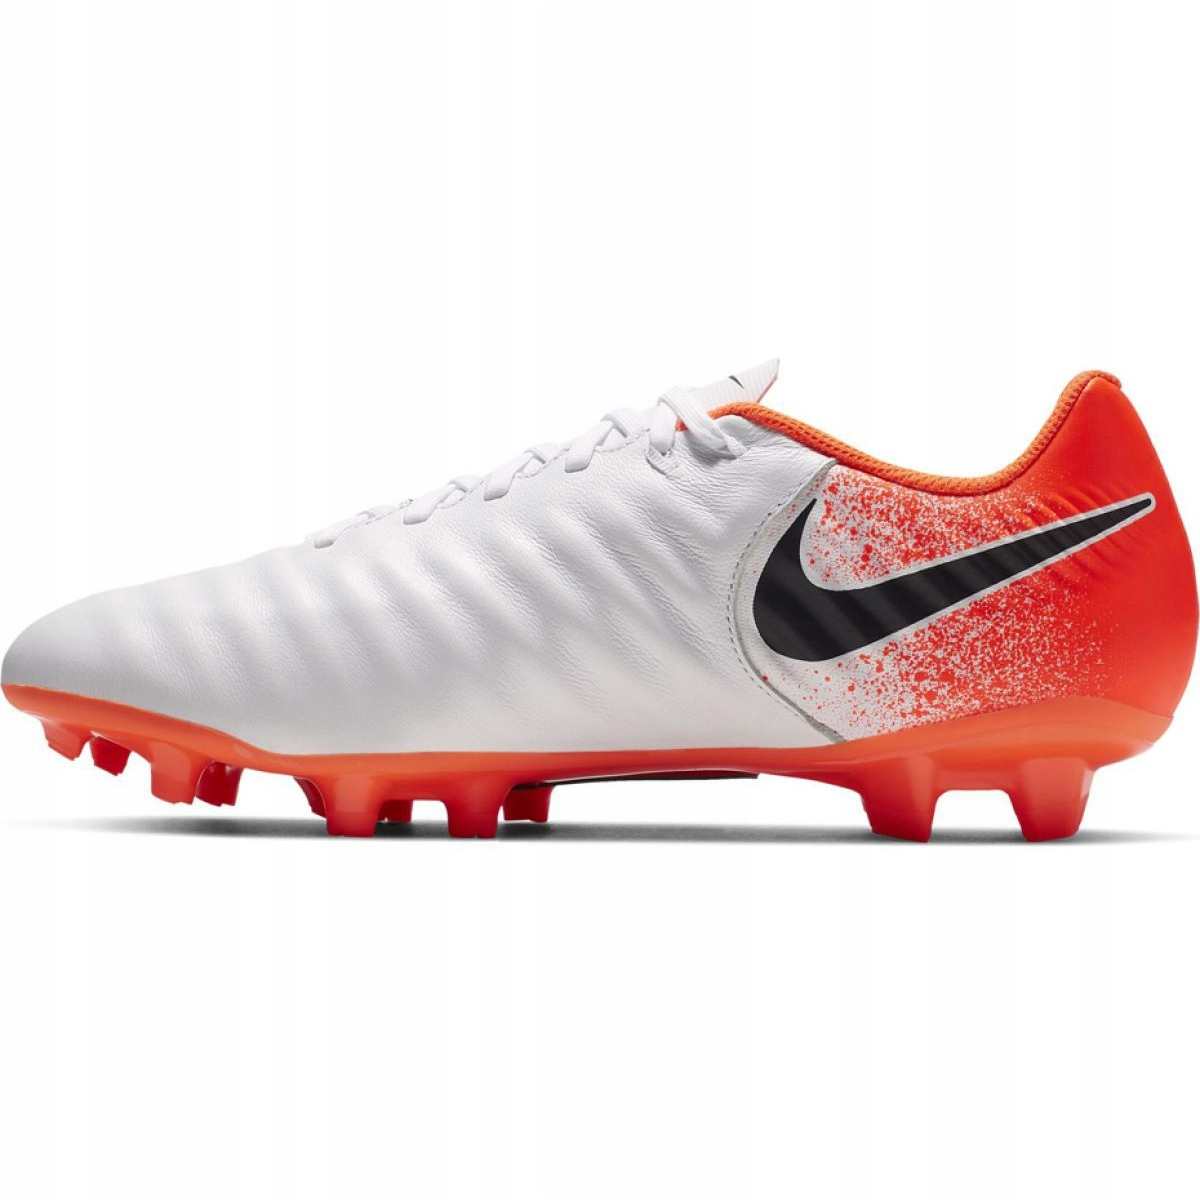 the latest 802cf 45f5d Football shoes Nike Tiempo Legend 7 Academy Fg M AH7242-118